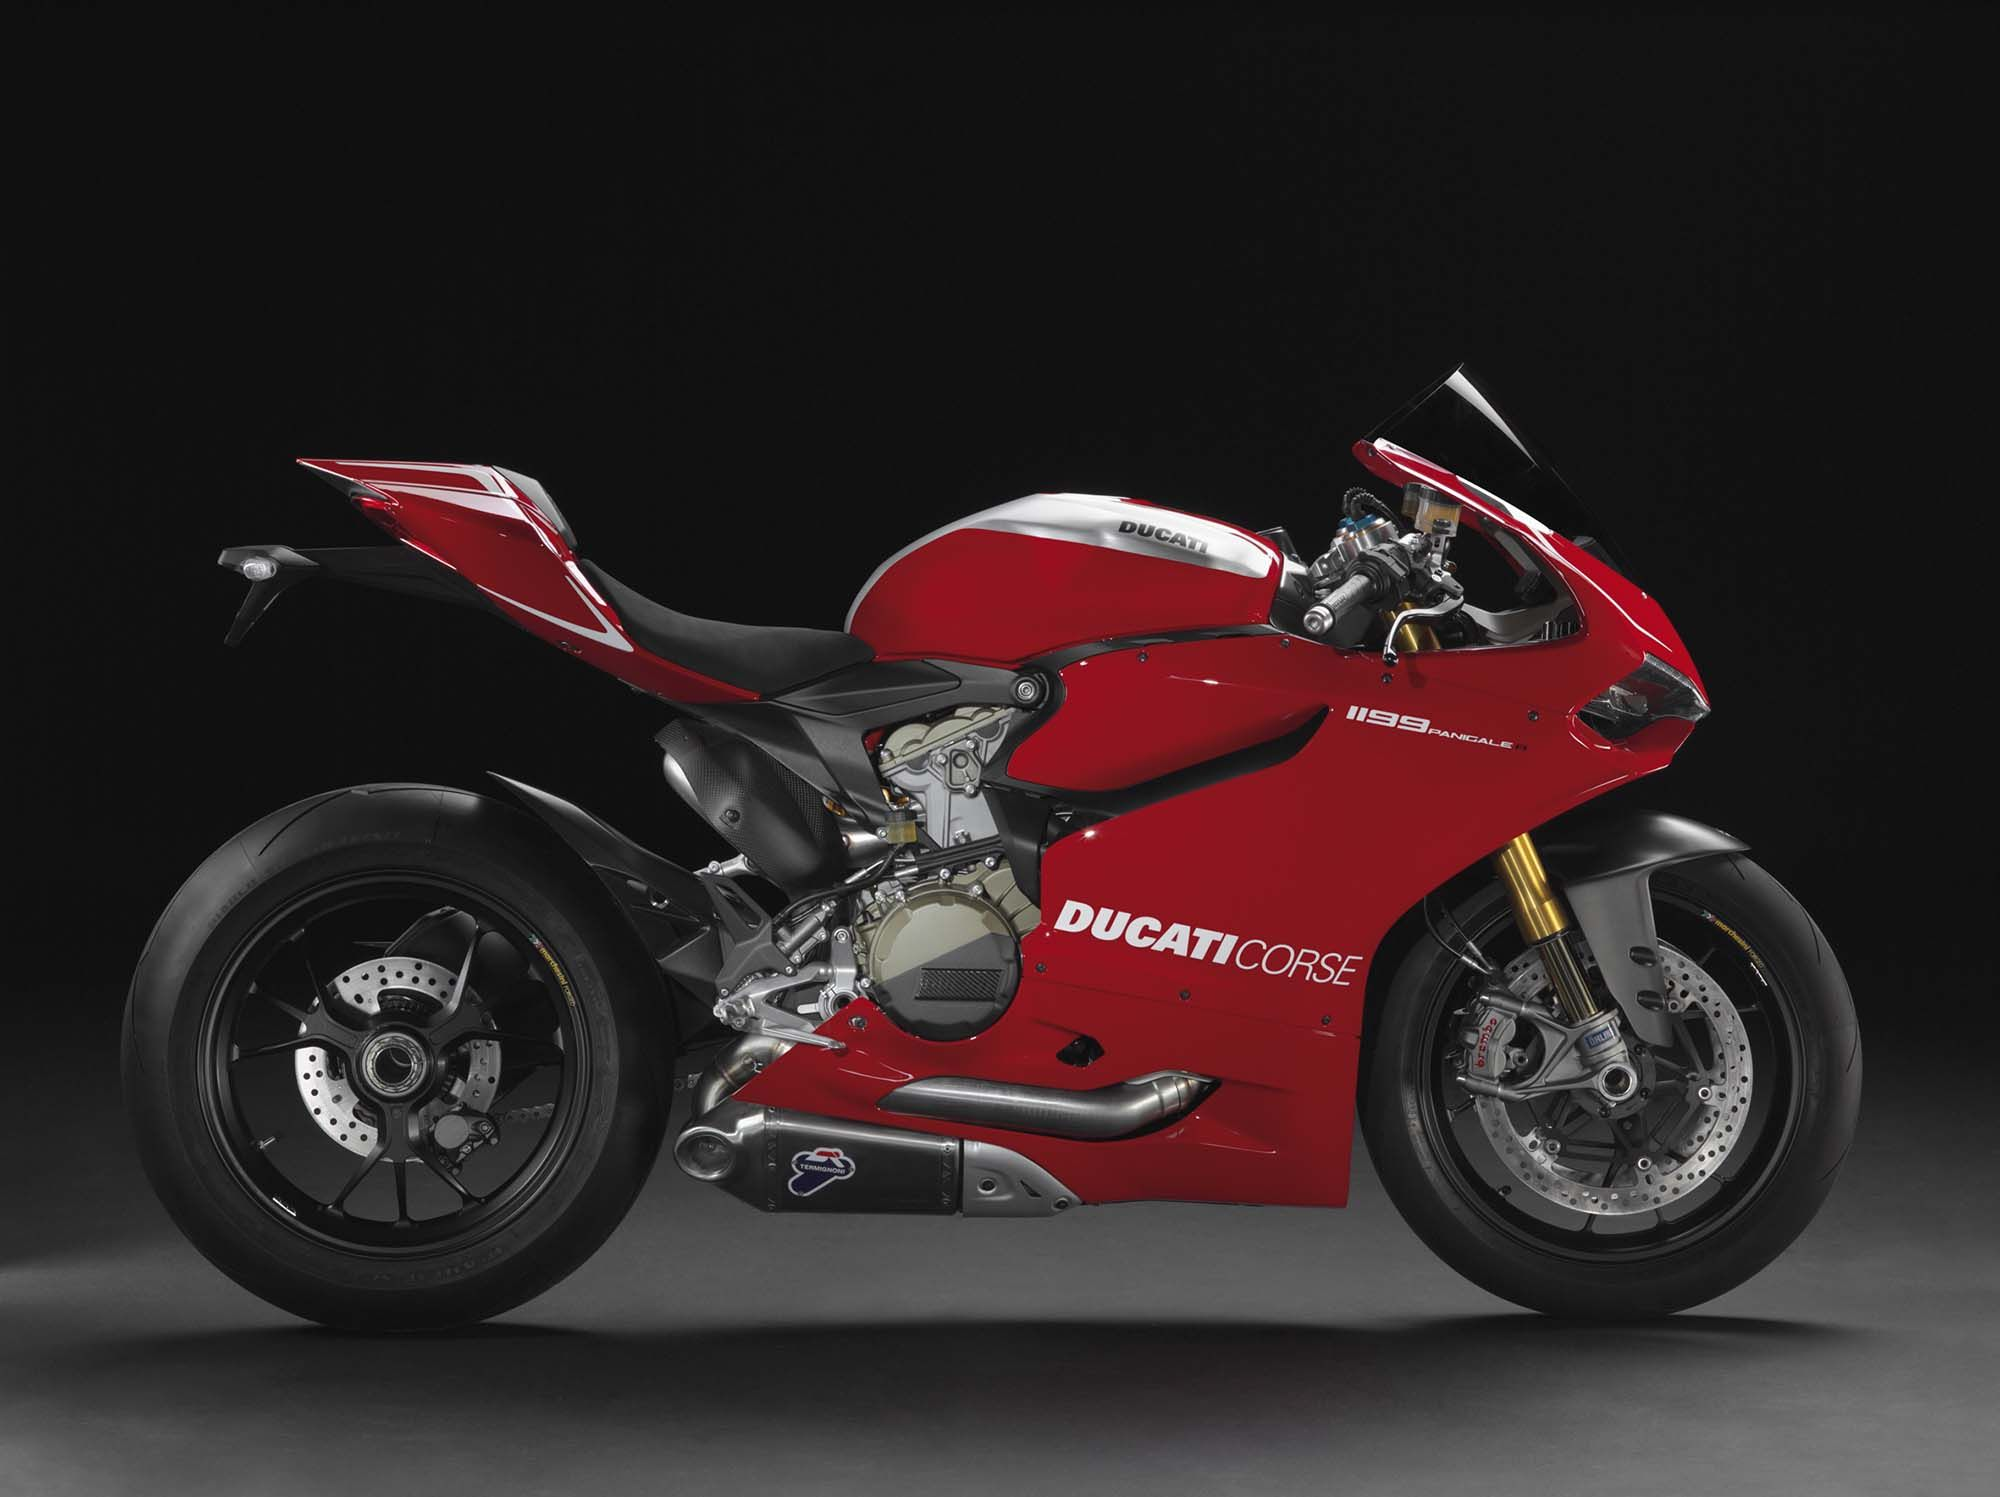 2013 Ducati 1199 Panigale R 201hp With Race Exhaust